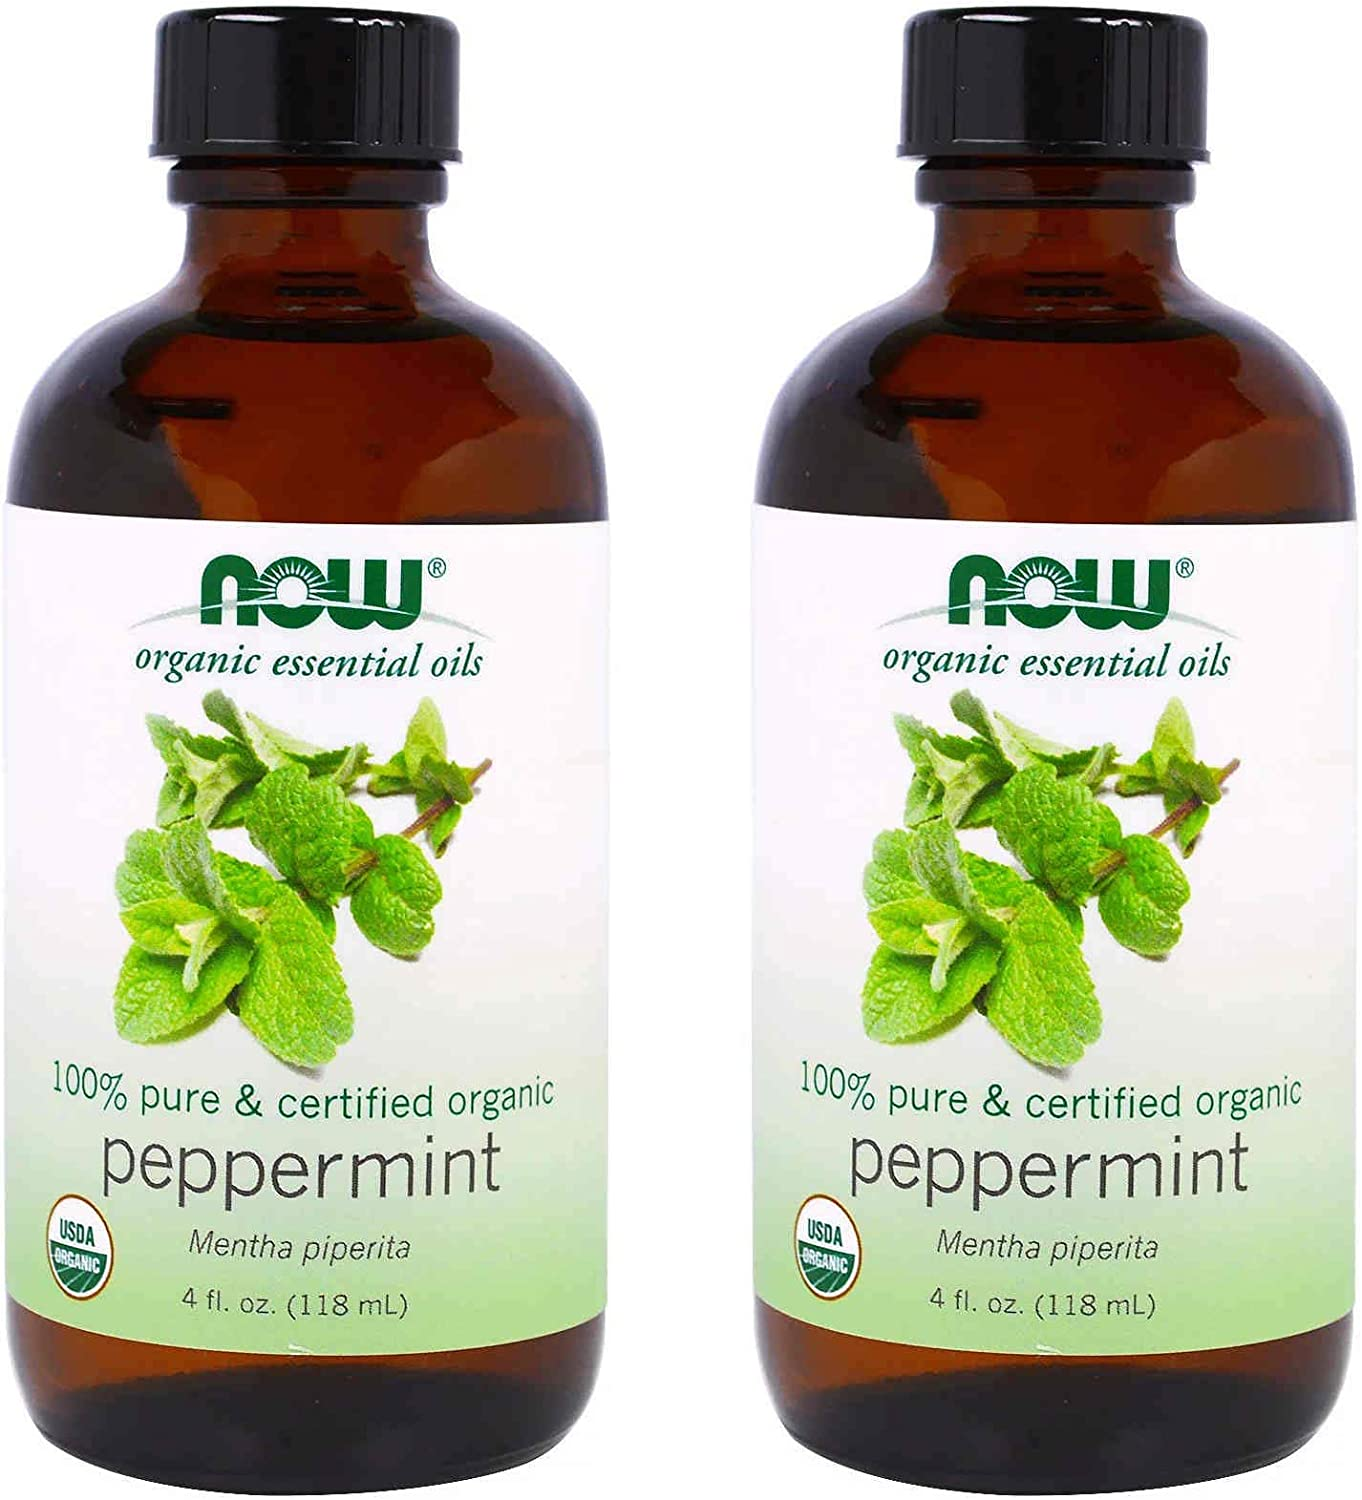 Now Peppermint Oil Certified Time sale Organic Price reduction - Mill 120 Fluid Ounces 4